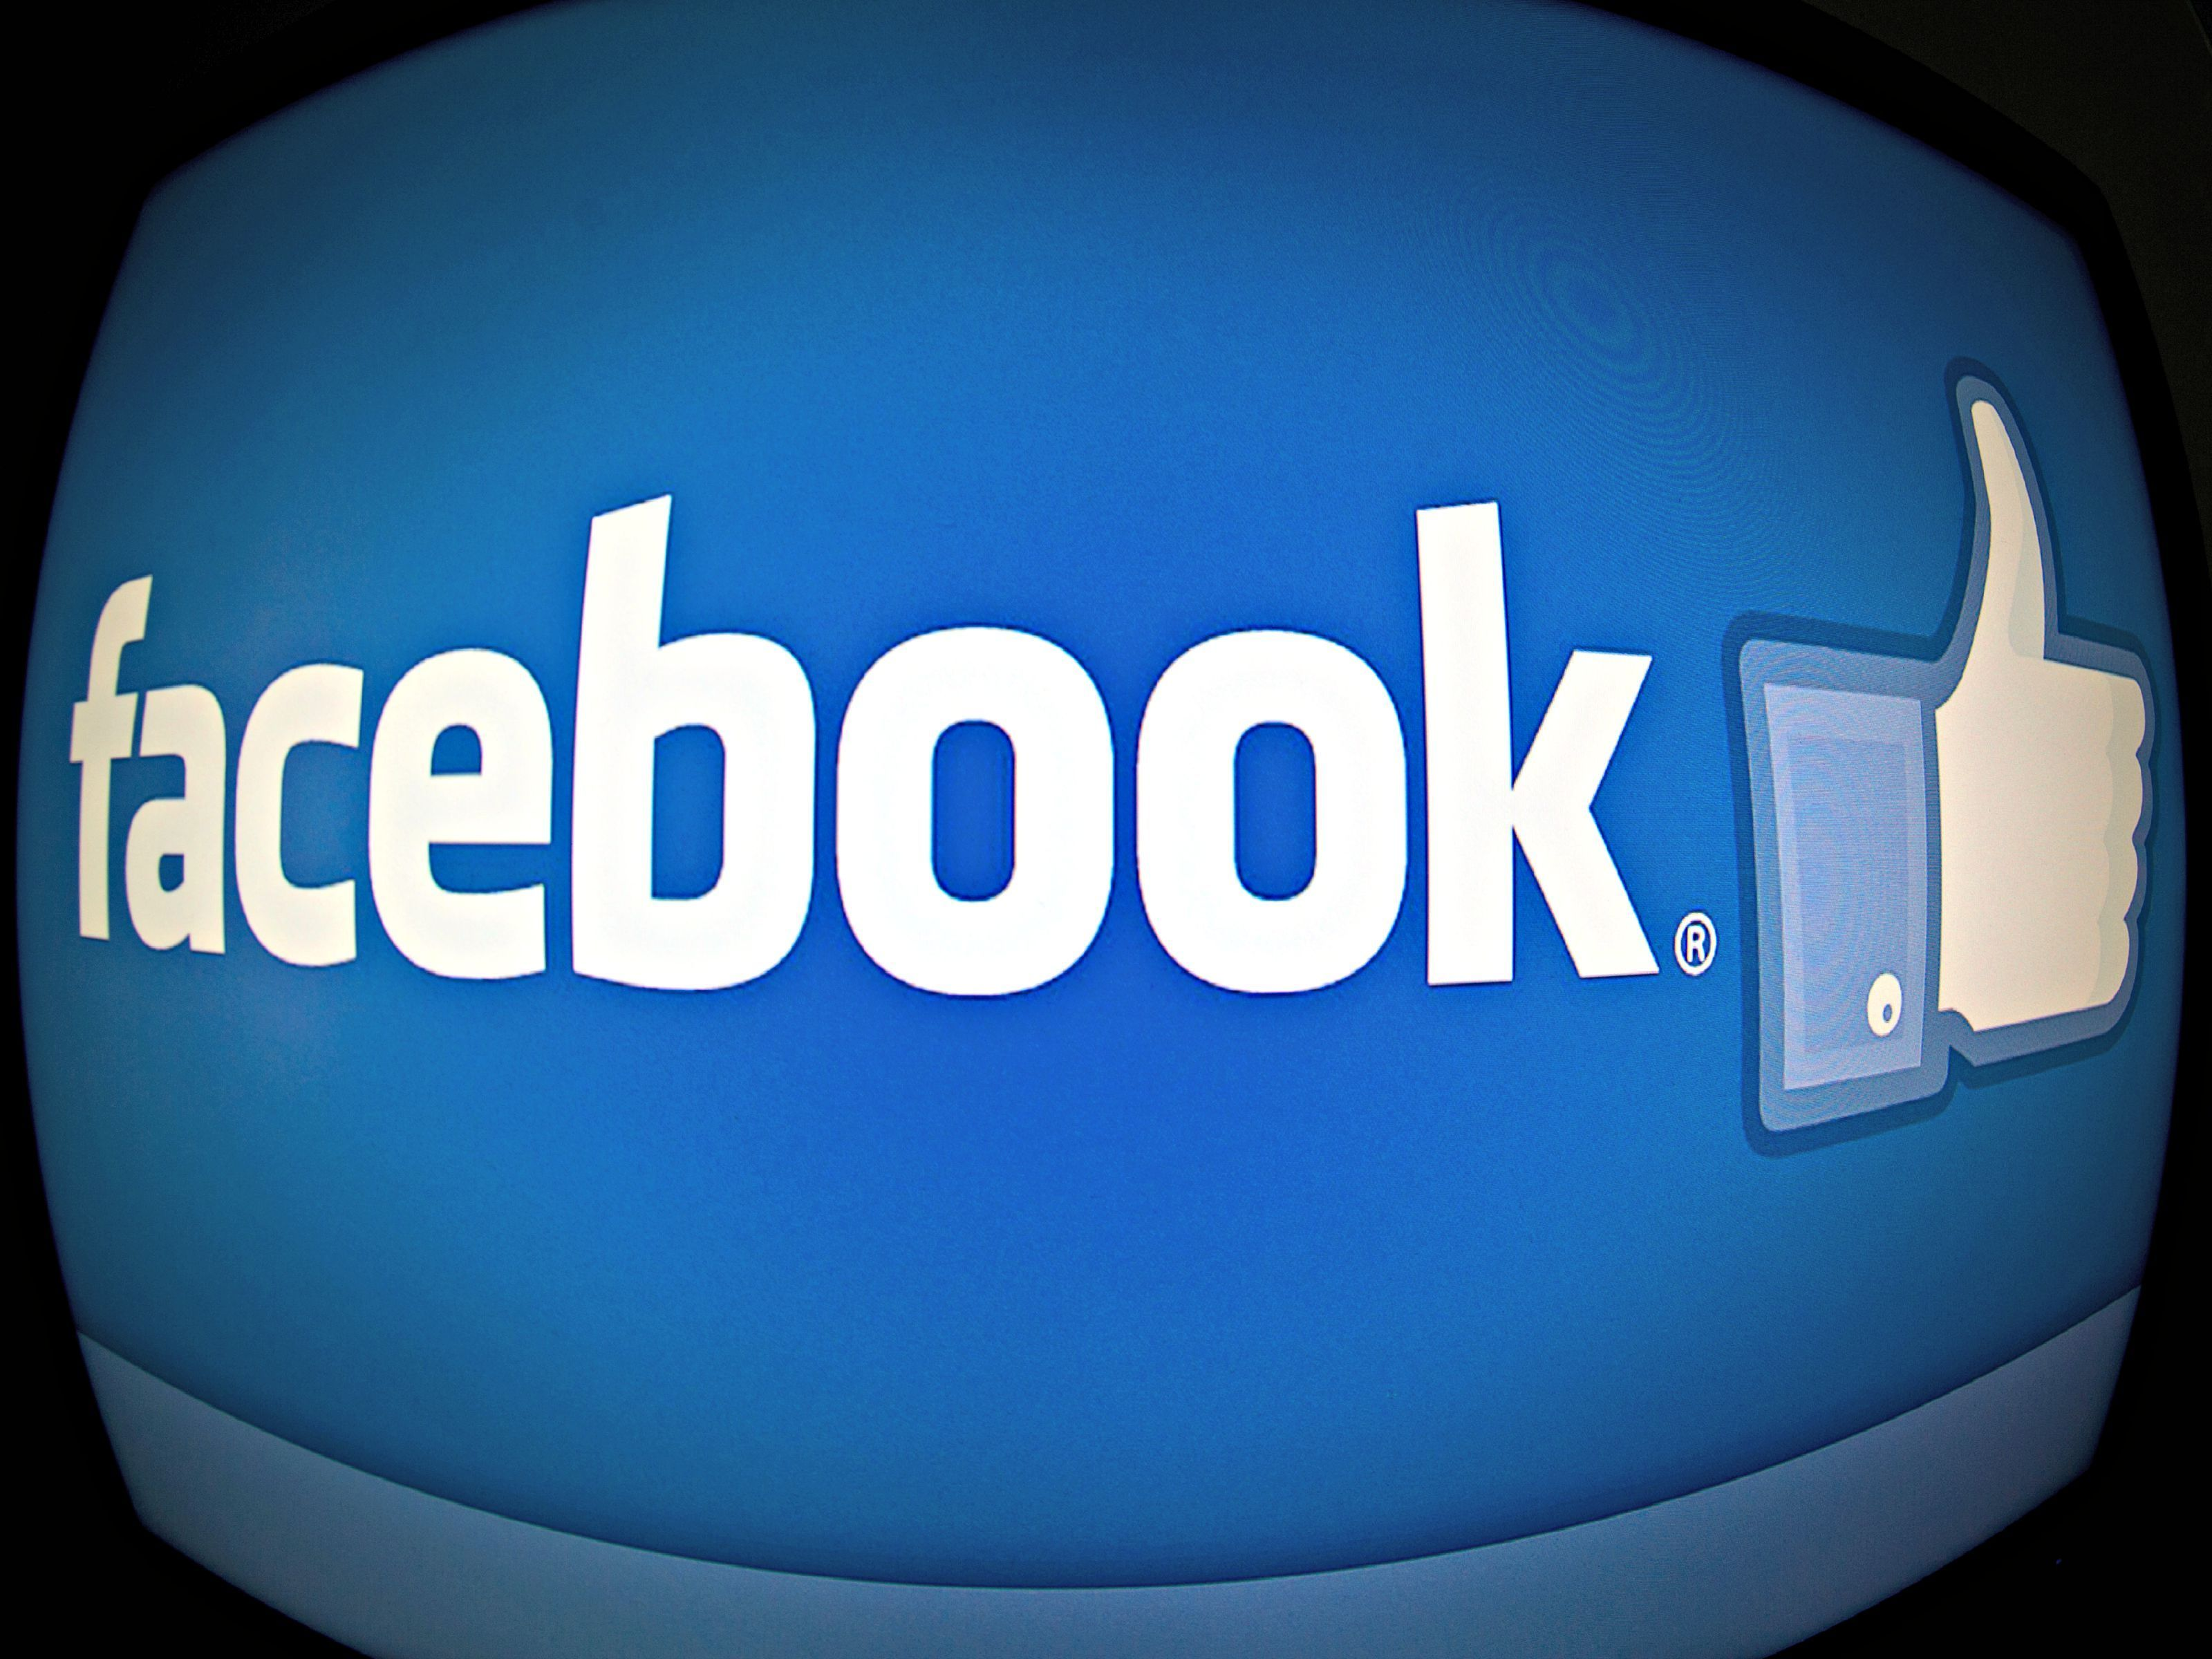 Facebook Blocks Mention of Competitor from Platform | Whoa